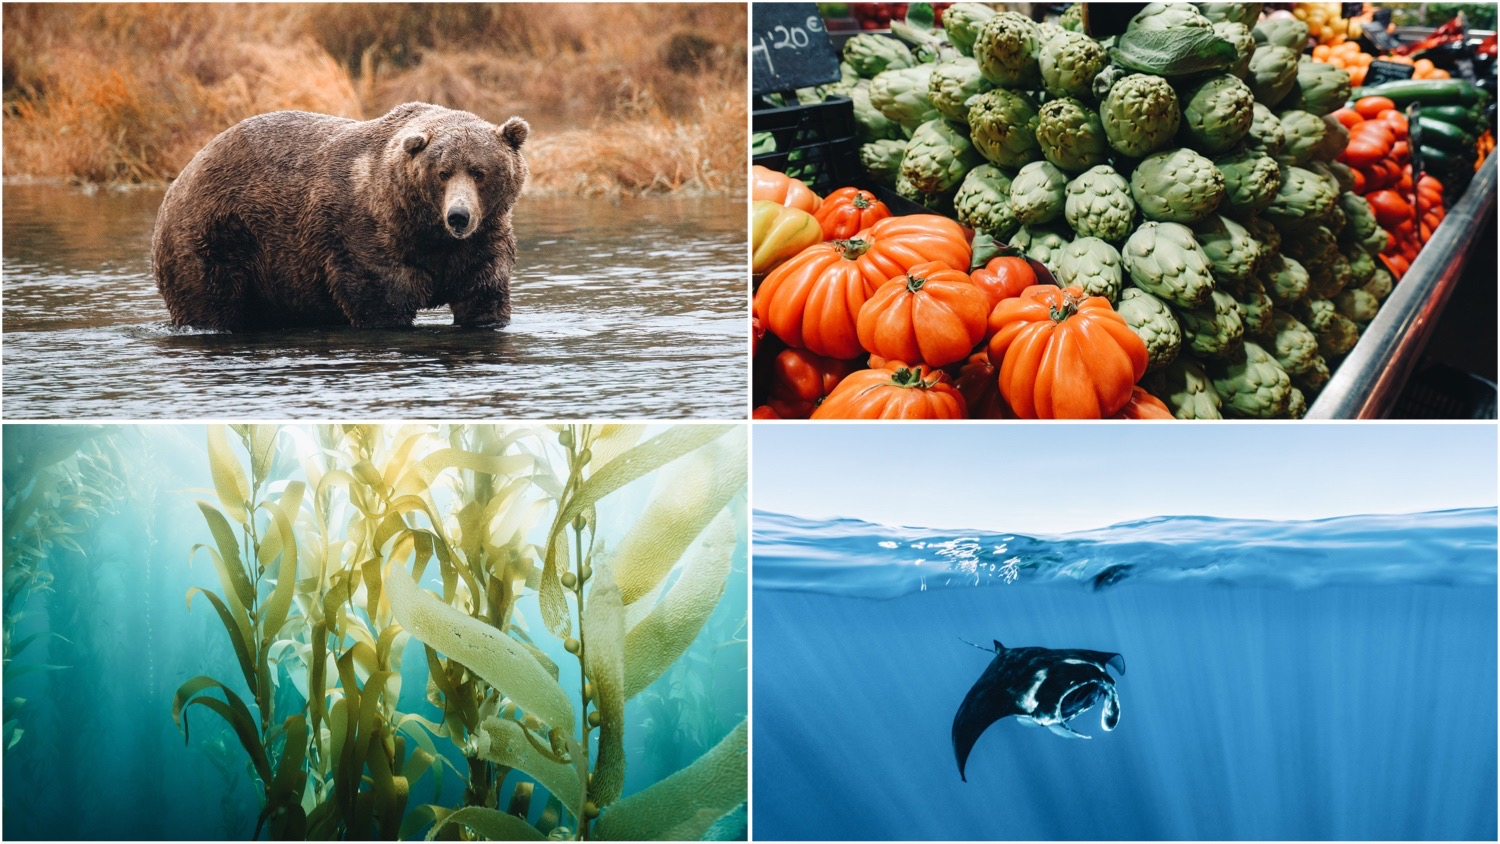 Collage of photos depicts an Alaskan brown bear (top left), a display of fresh vegetables (top right), kelp (bottom left), and a swimming manta ray (bottom right). Fat Bear Week isn't the only good climate news from the last month.